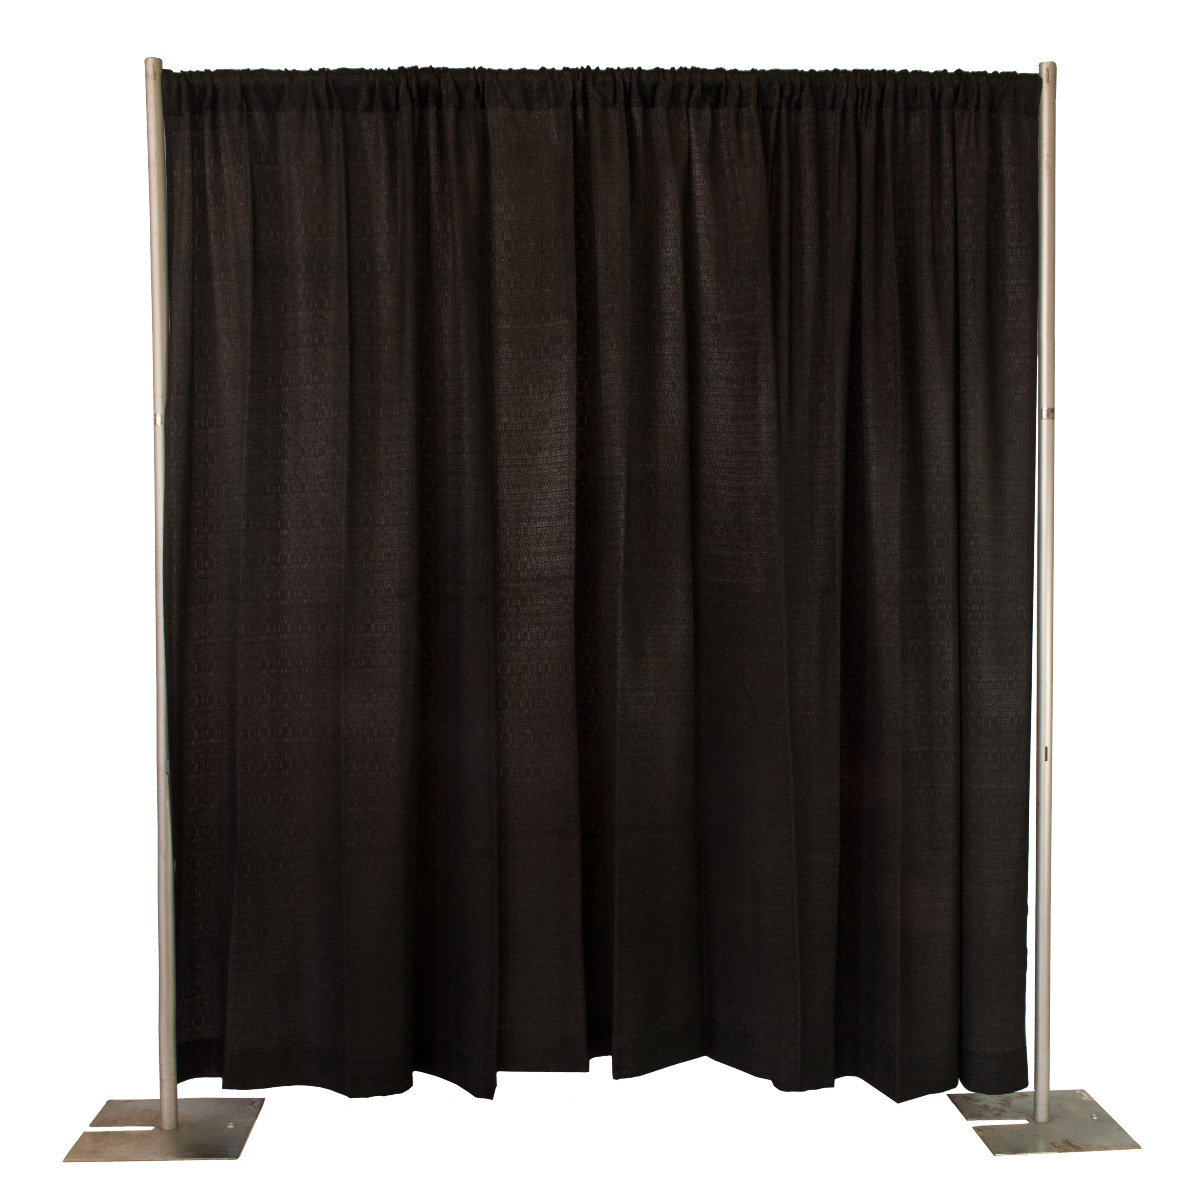 ft stand drape and with rentals party pipe celebrations tall product drapes chalkboard